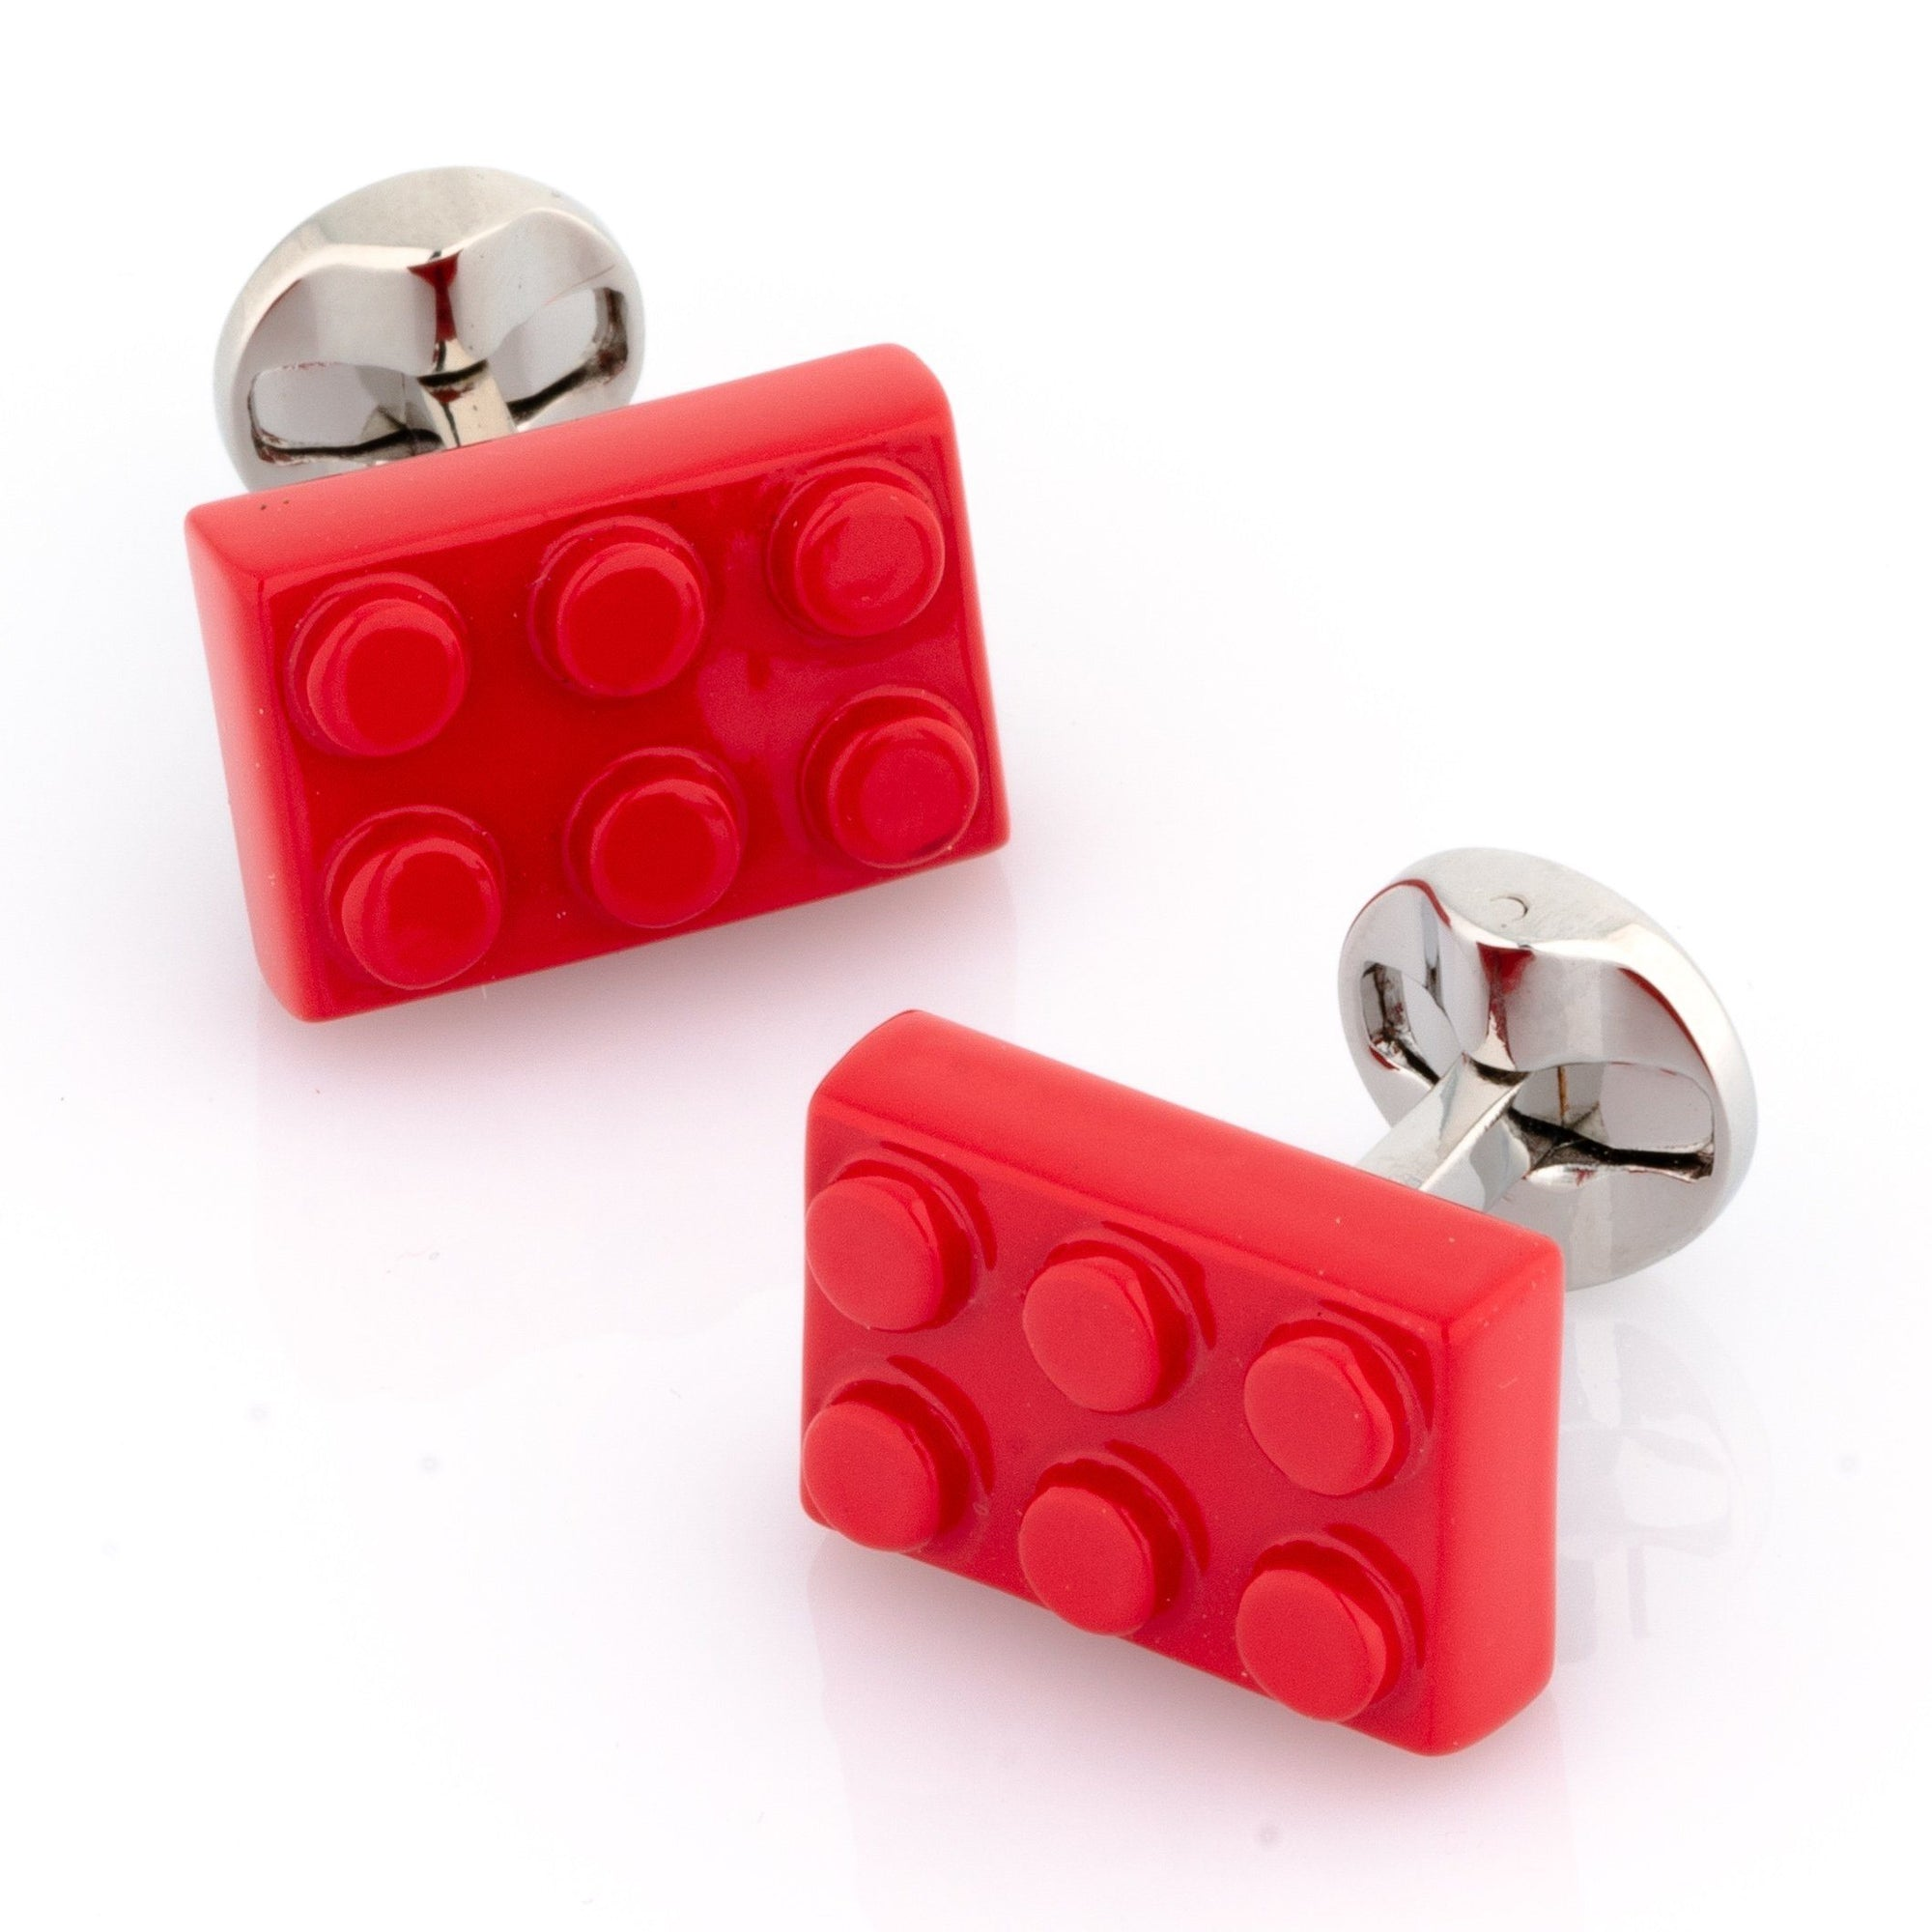 Red Building Block Cufflinks Novelty Cufflinks Clinks Australia Red Building Block Cufflinks